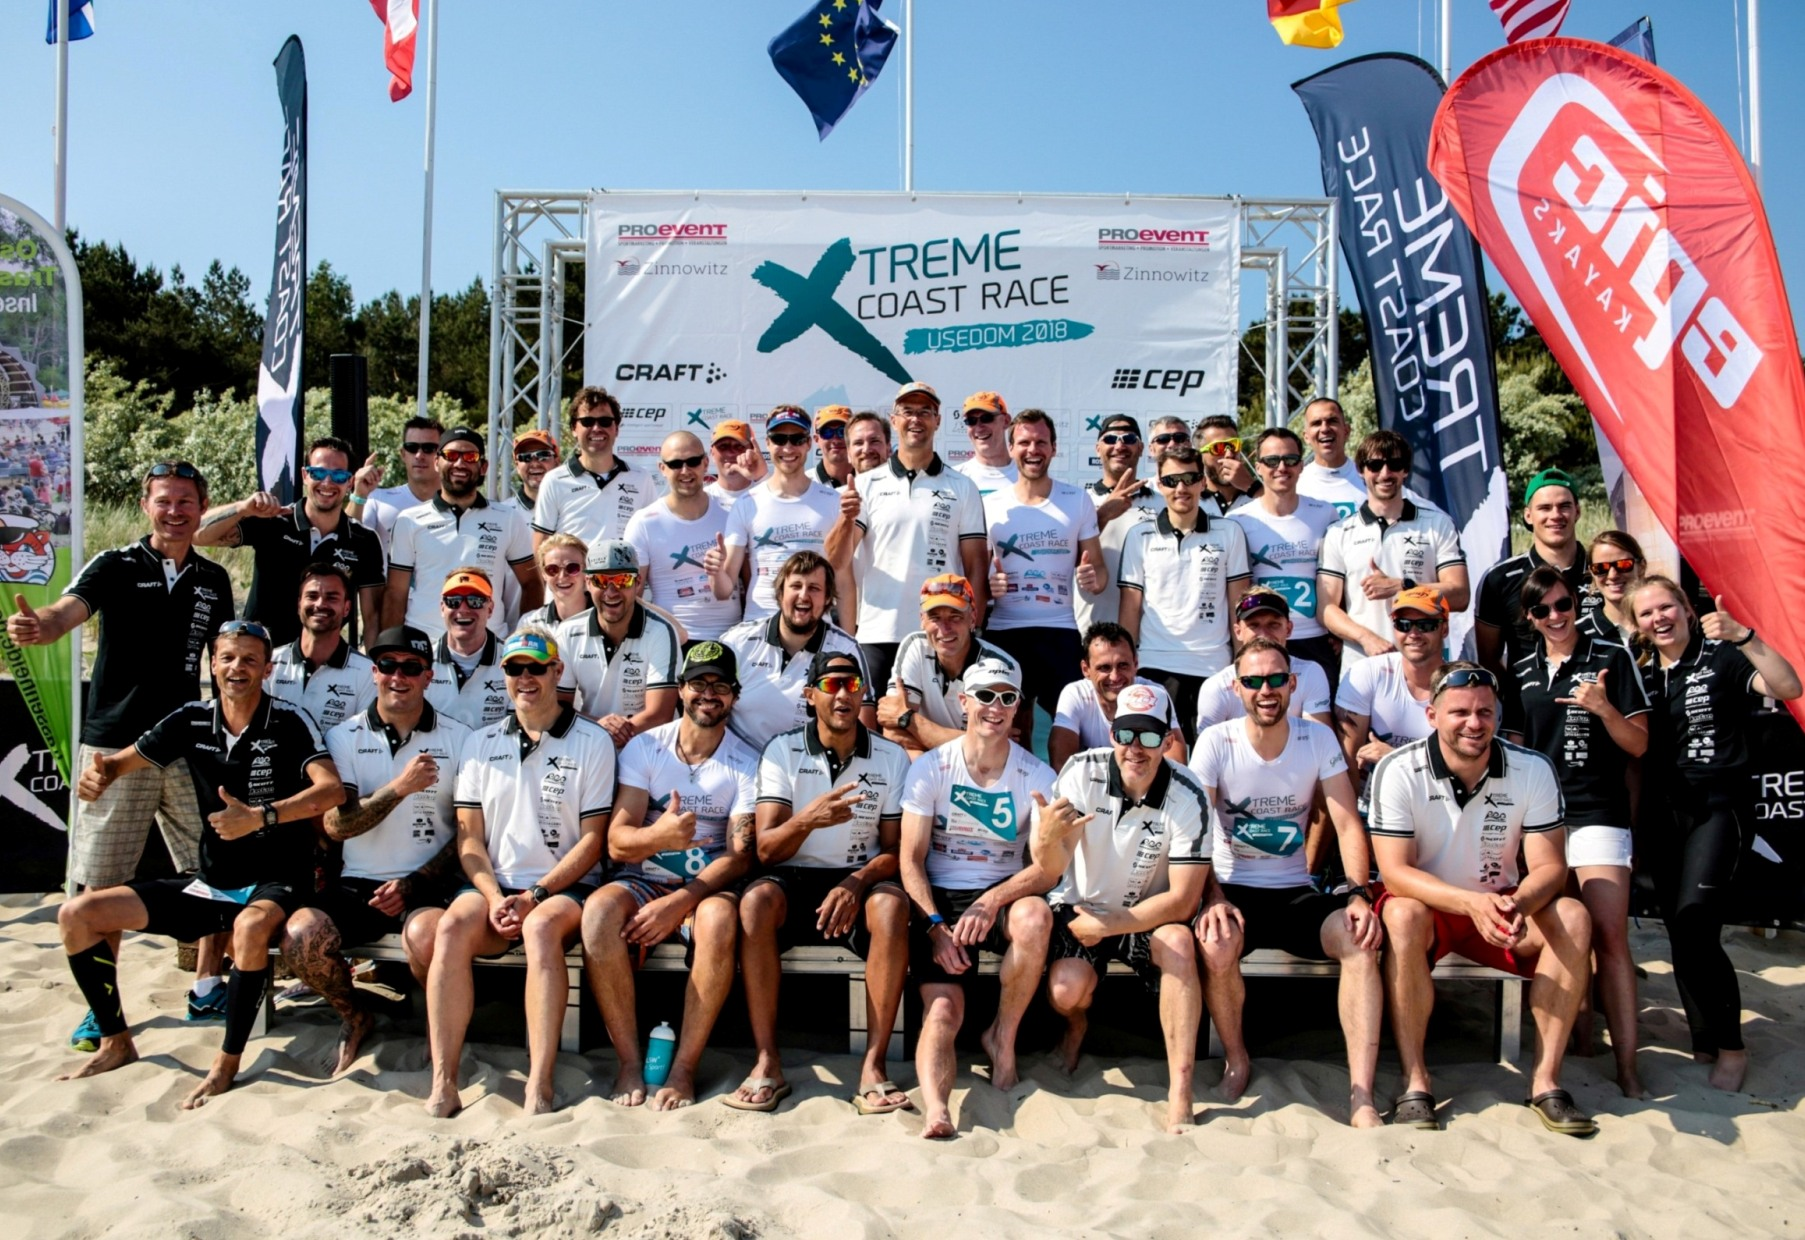 Team Xtreme Coast Race neu